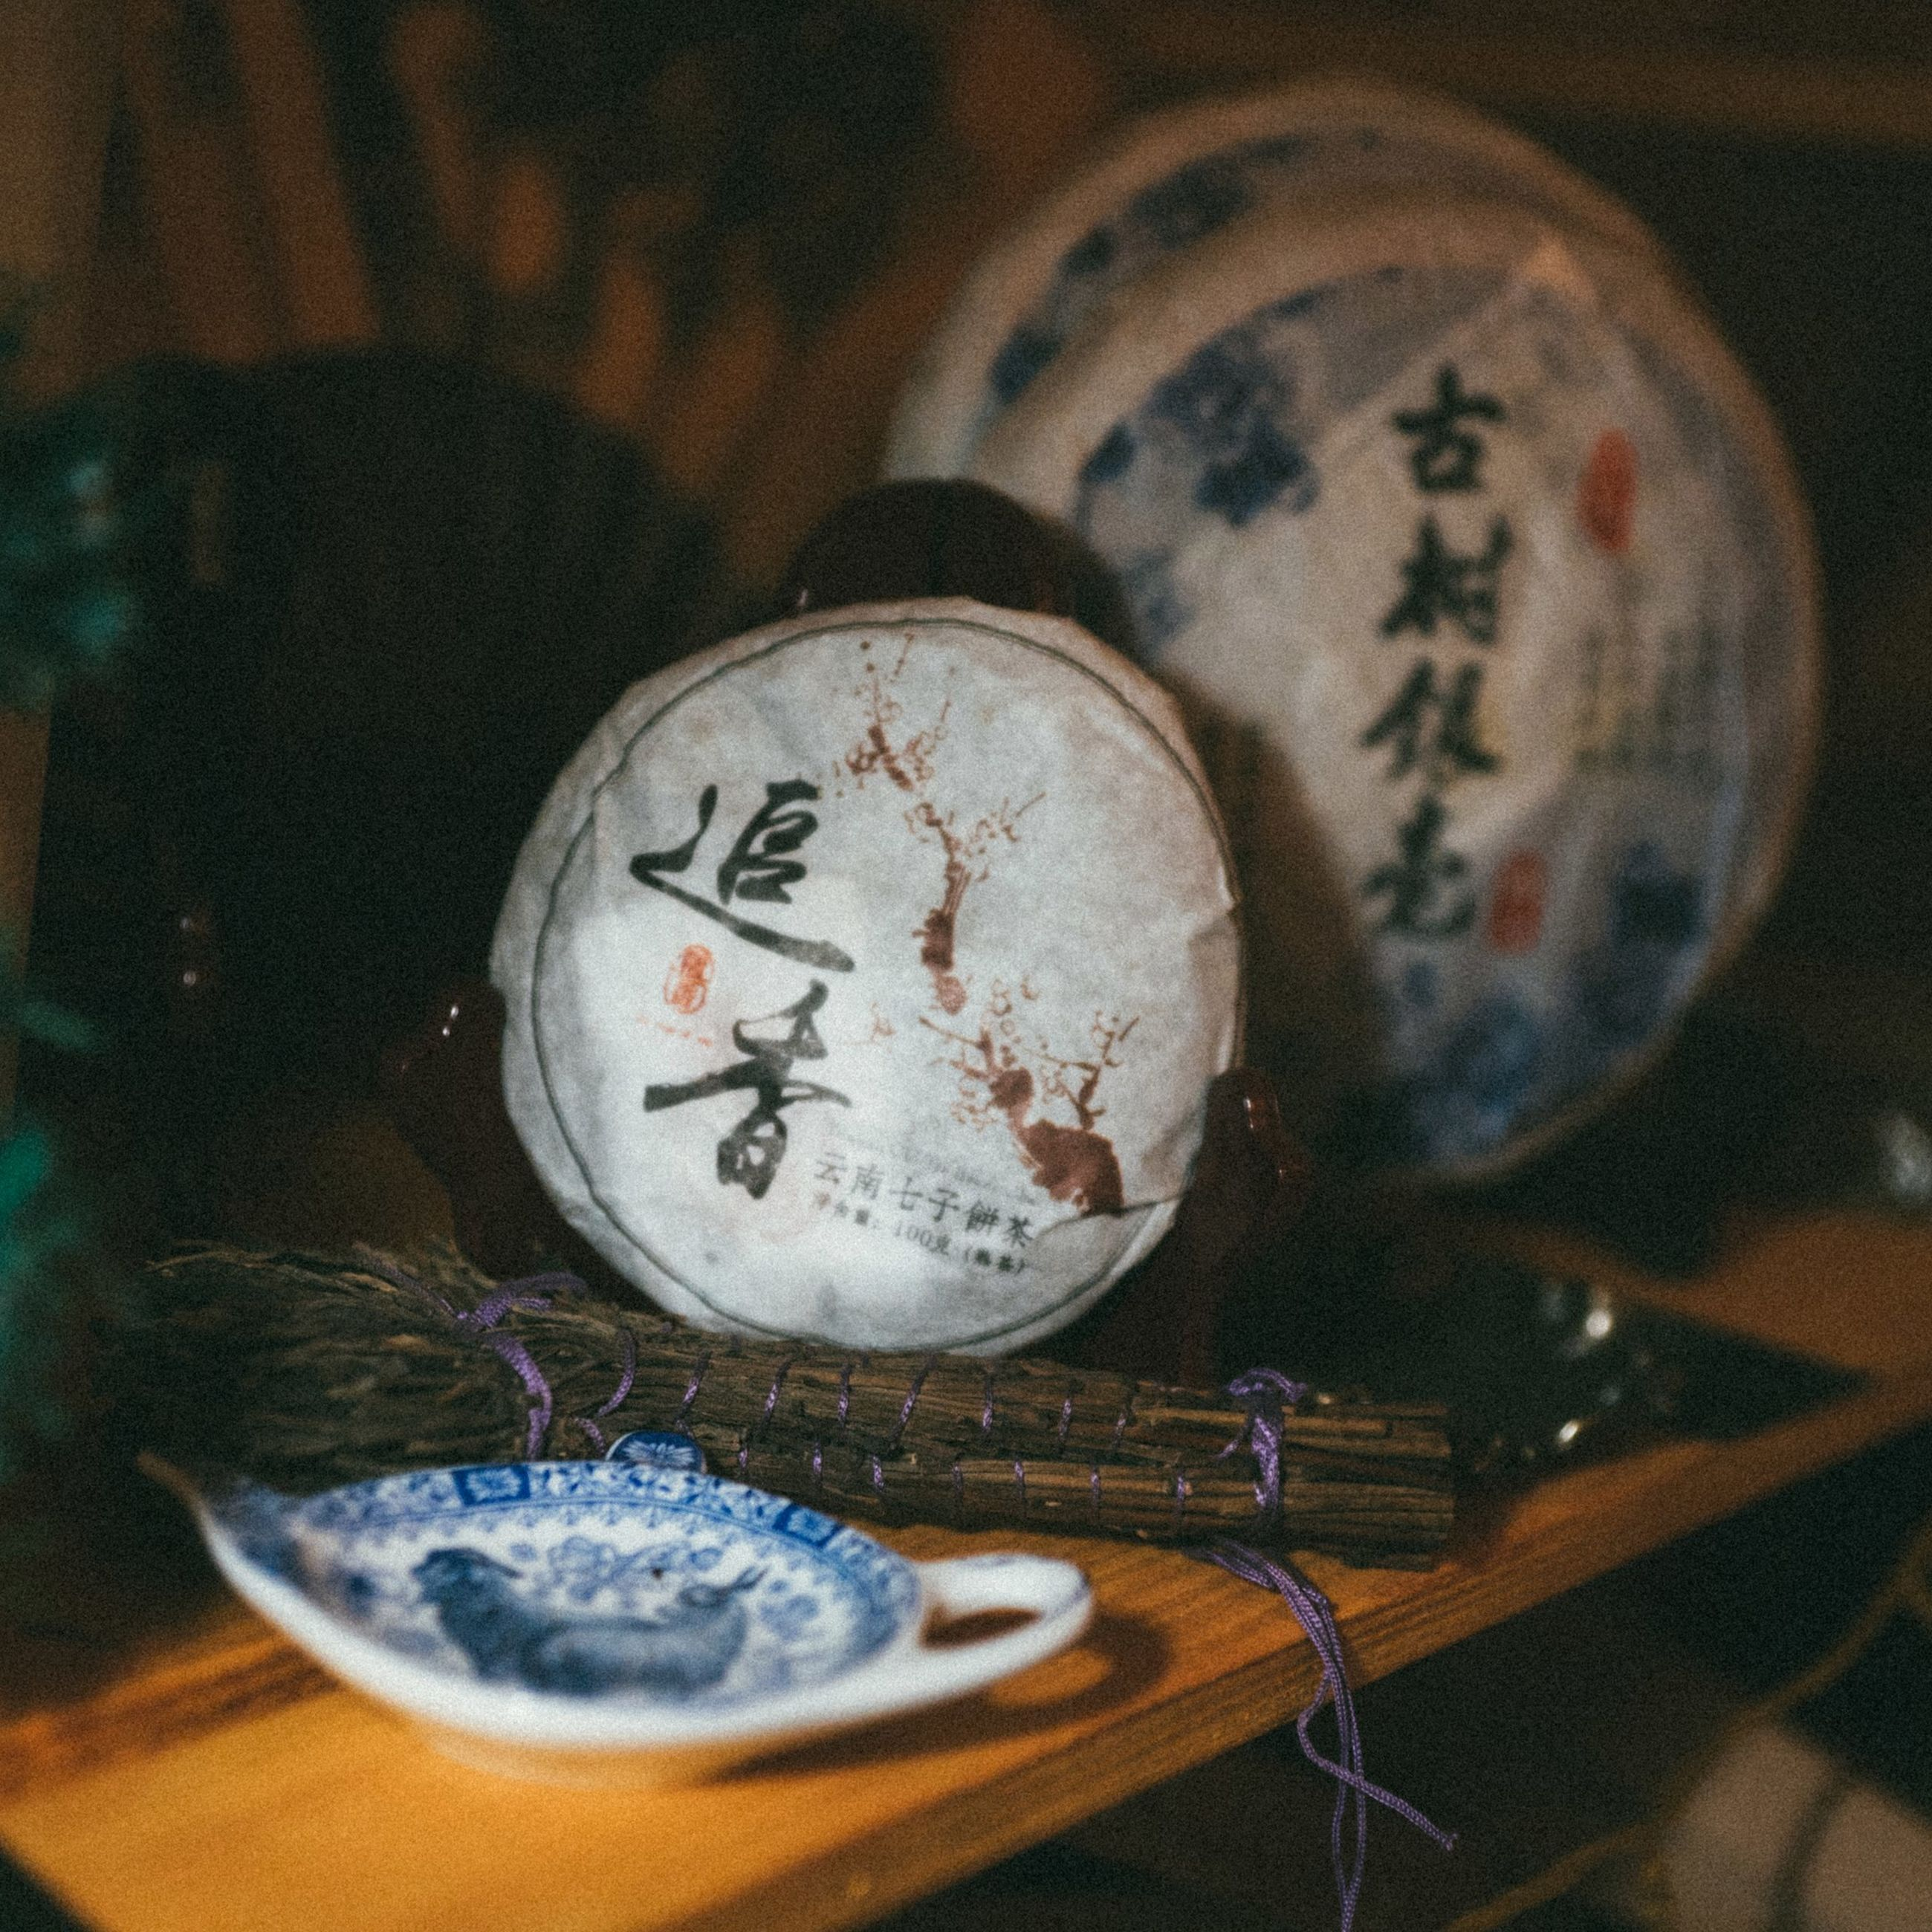 indoors, close-up, no people, text, number, focus on foreground, communication, selective focus, still life, western script, food and drink, clock, table, art and craft, old, accuracy, food, shape, time, minute hand